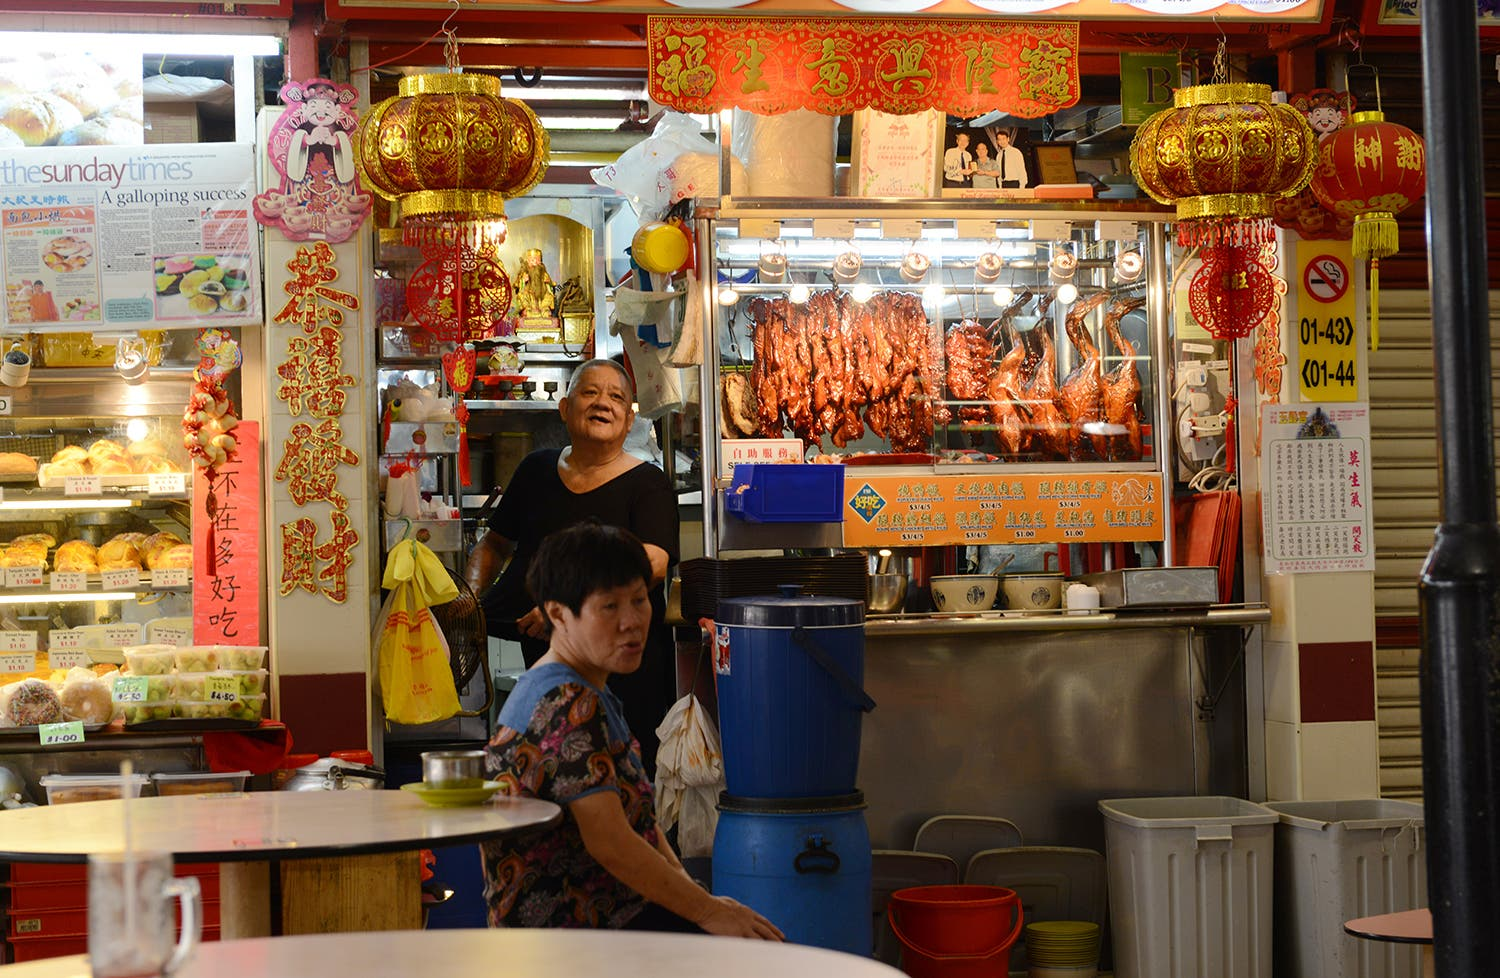 A vendor in a Singapore hawker market selling duck (Photo: Peter Harrison)